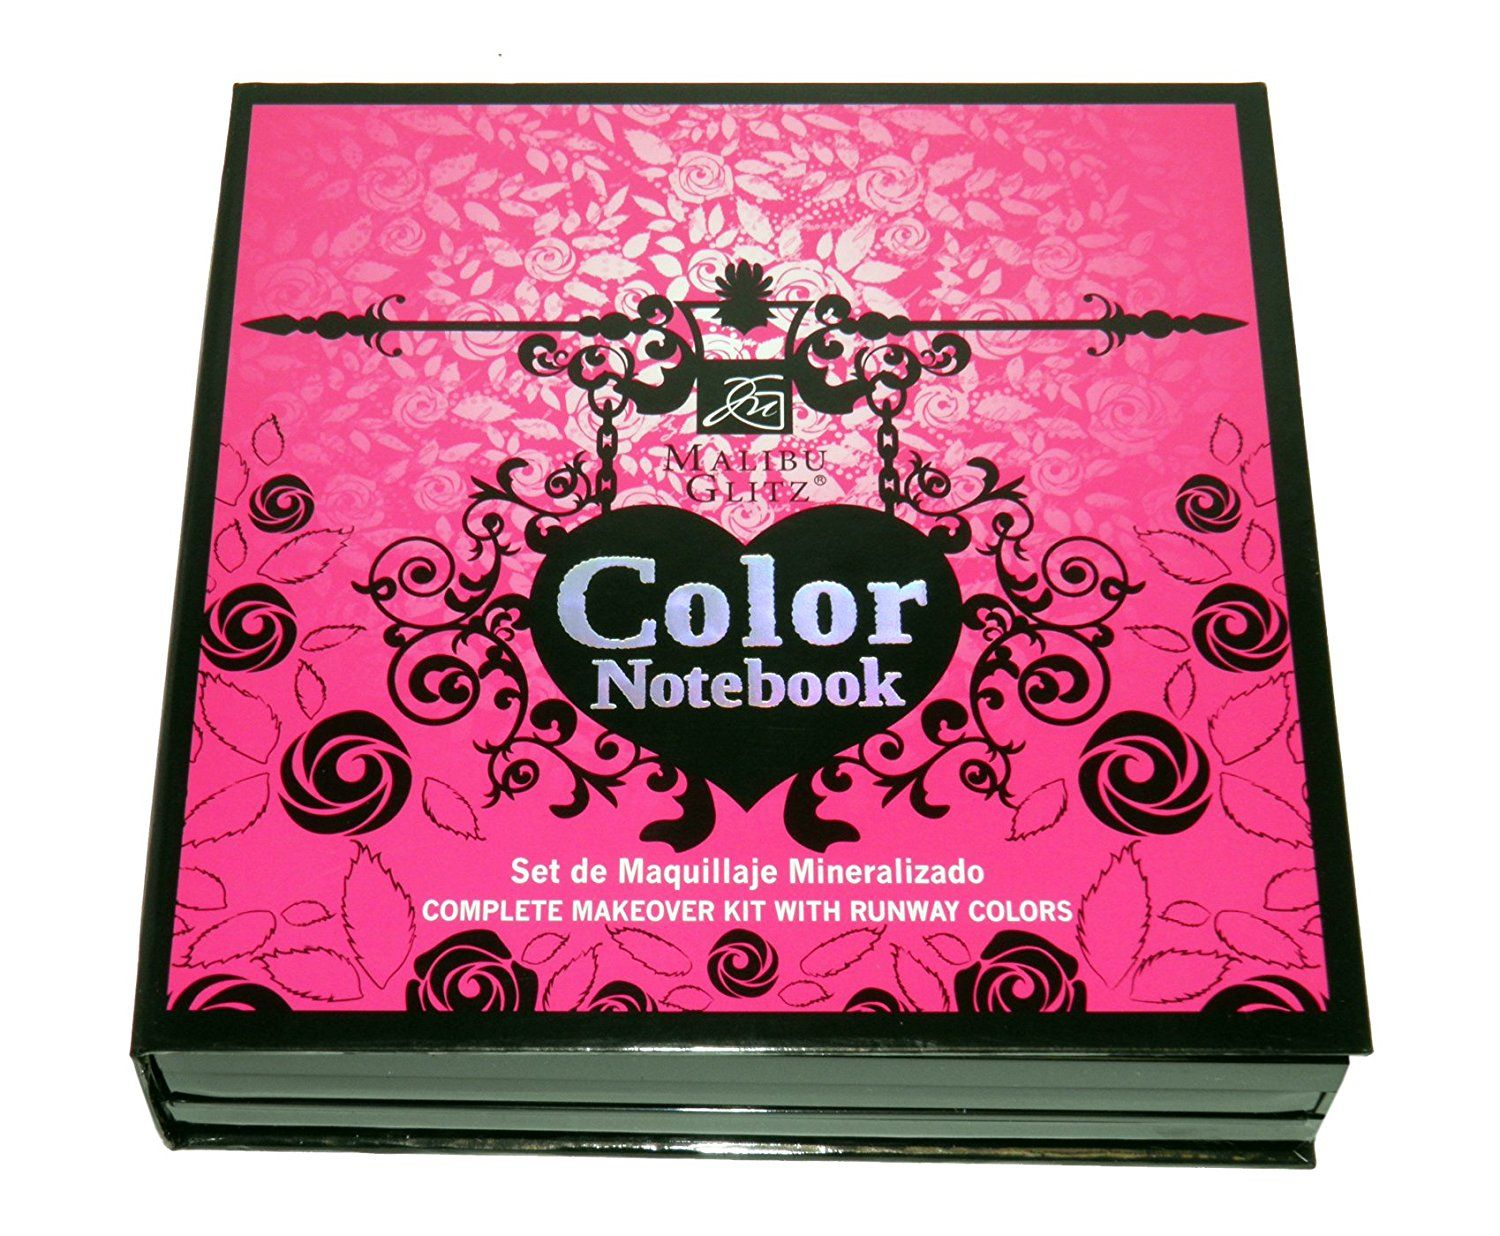 Color Notebook Makeup Kit >>> Quickly view this special